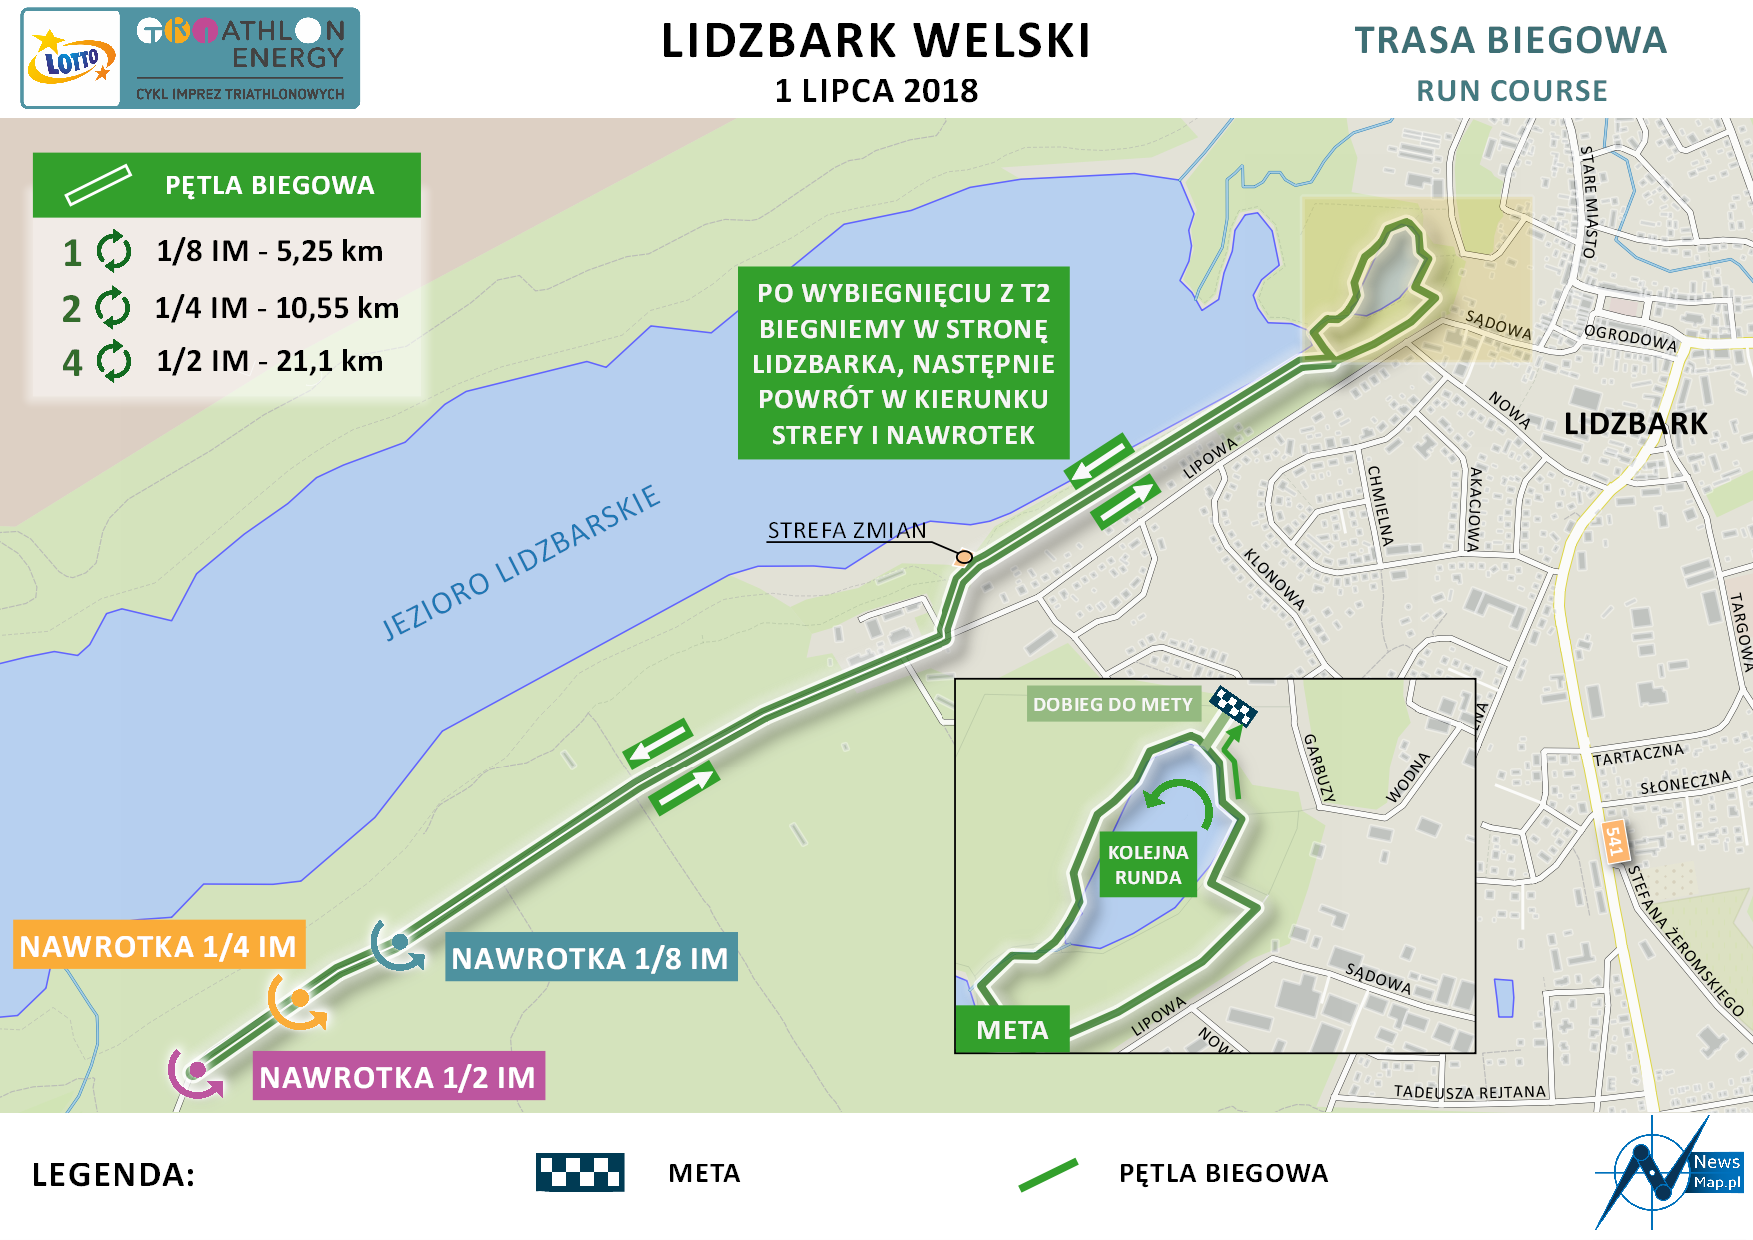 Energy Triathlon Lidzbark Welski 1/8 IM